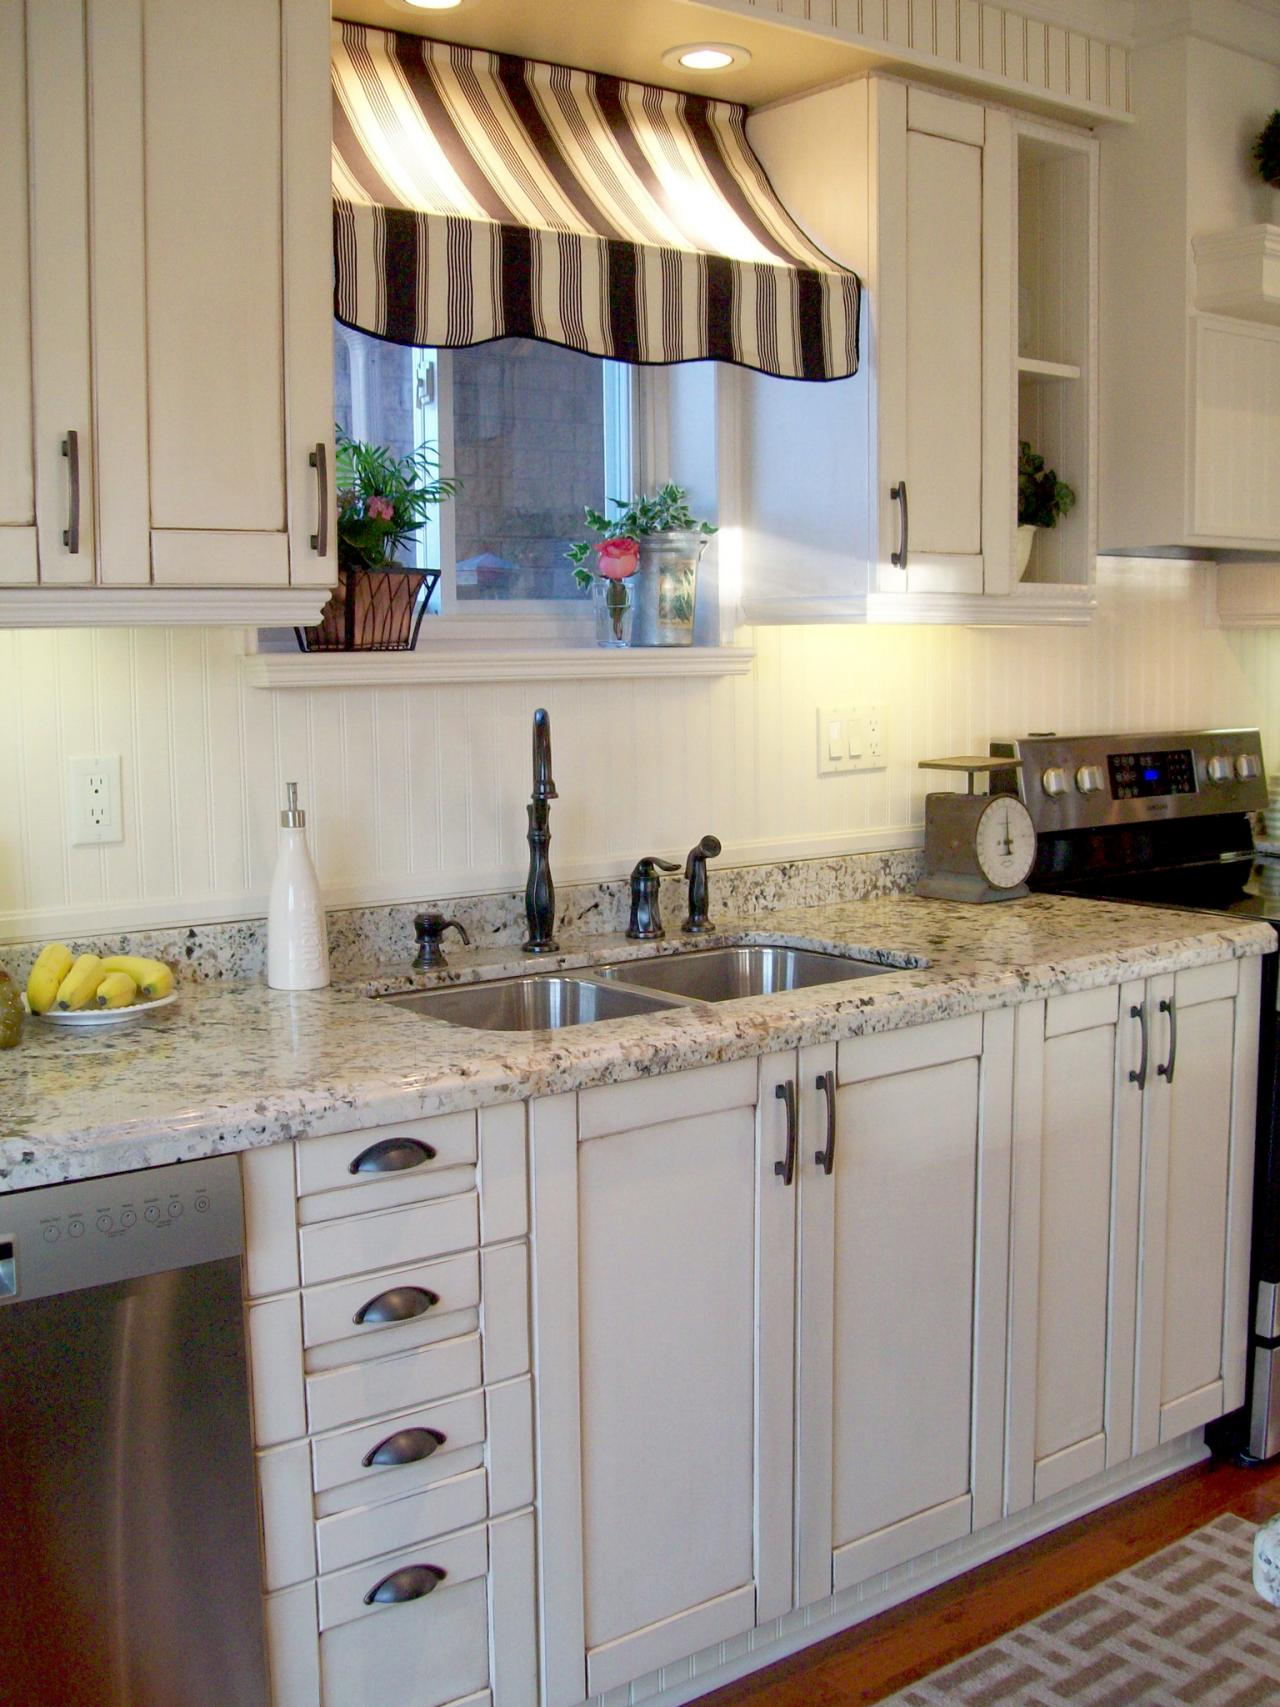 Kitchen Decorating Ideas Kitchen Accessories & Decorating Ideas  Hgtv Pictures  Hgtv